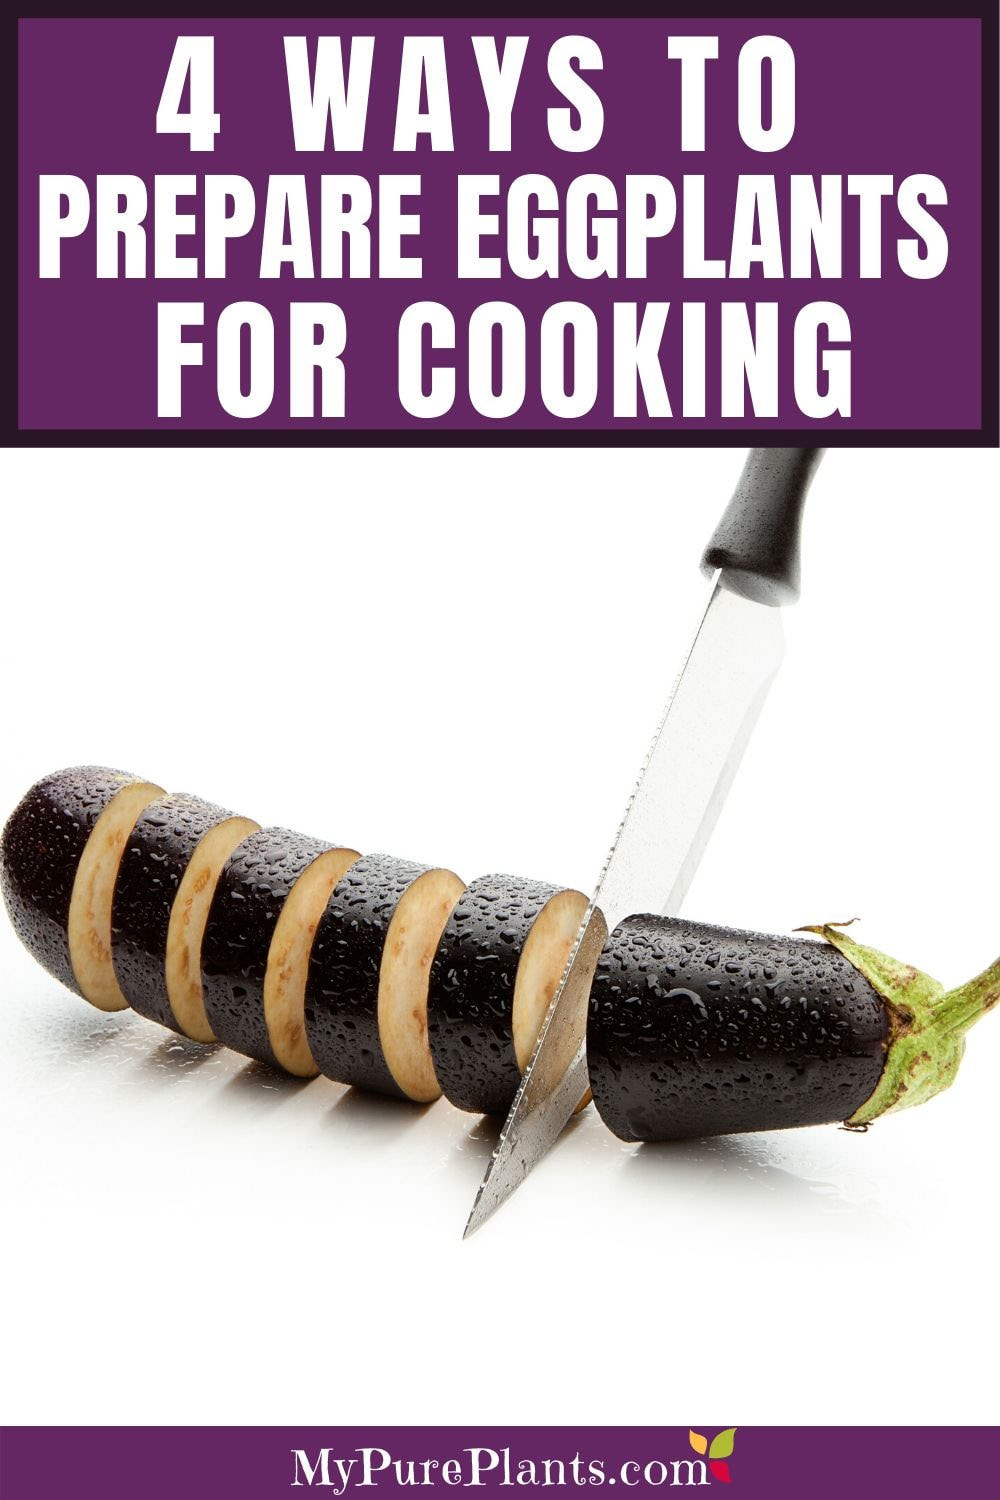 A knife is cutting an eggplant into 1-inch slices. They are floating before a white background.